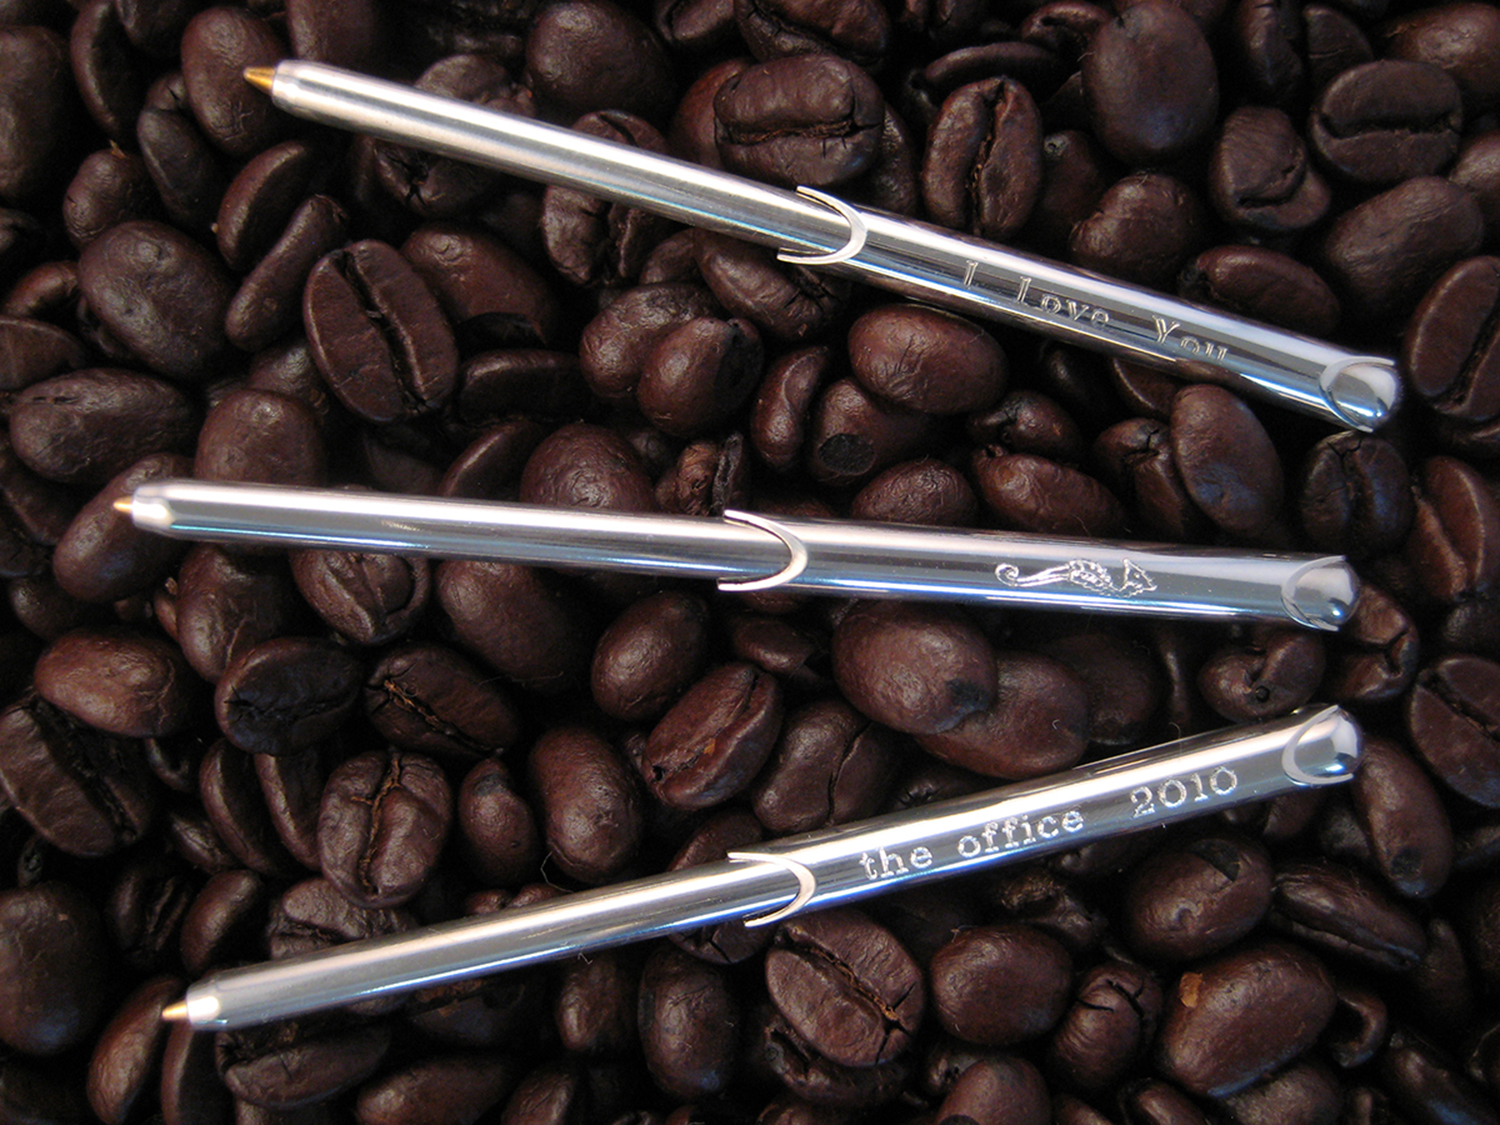 3penson-coffeebeans-engraving-walletpen+(1).jpg